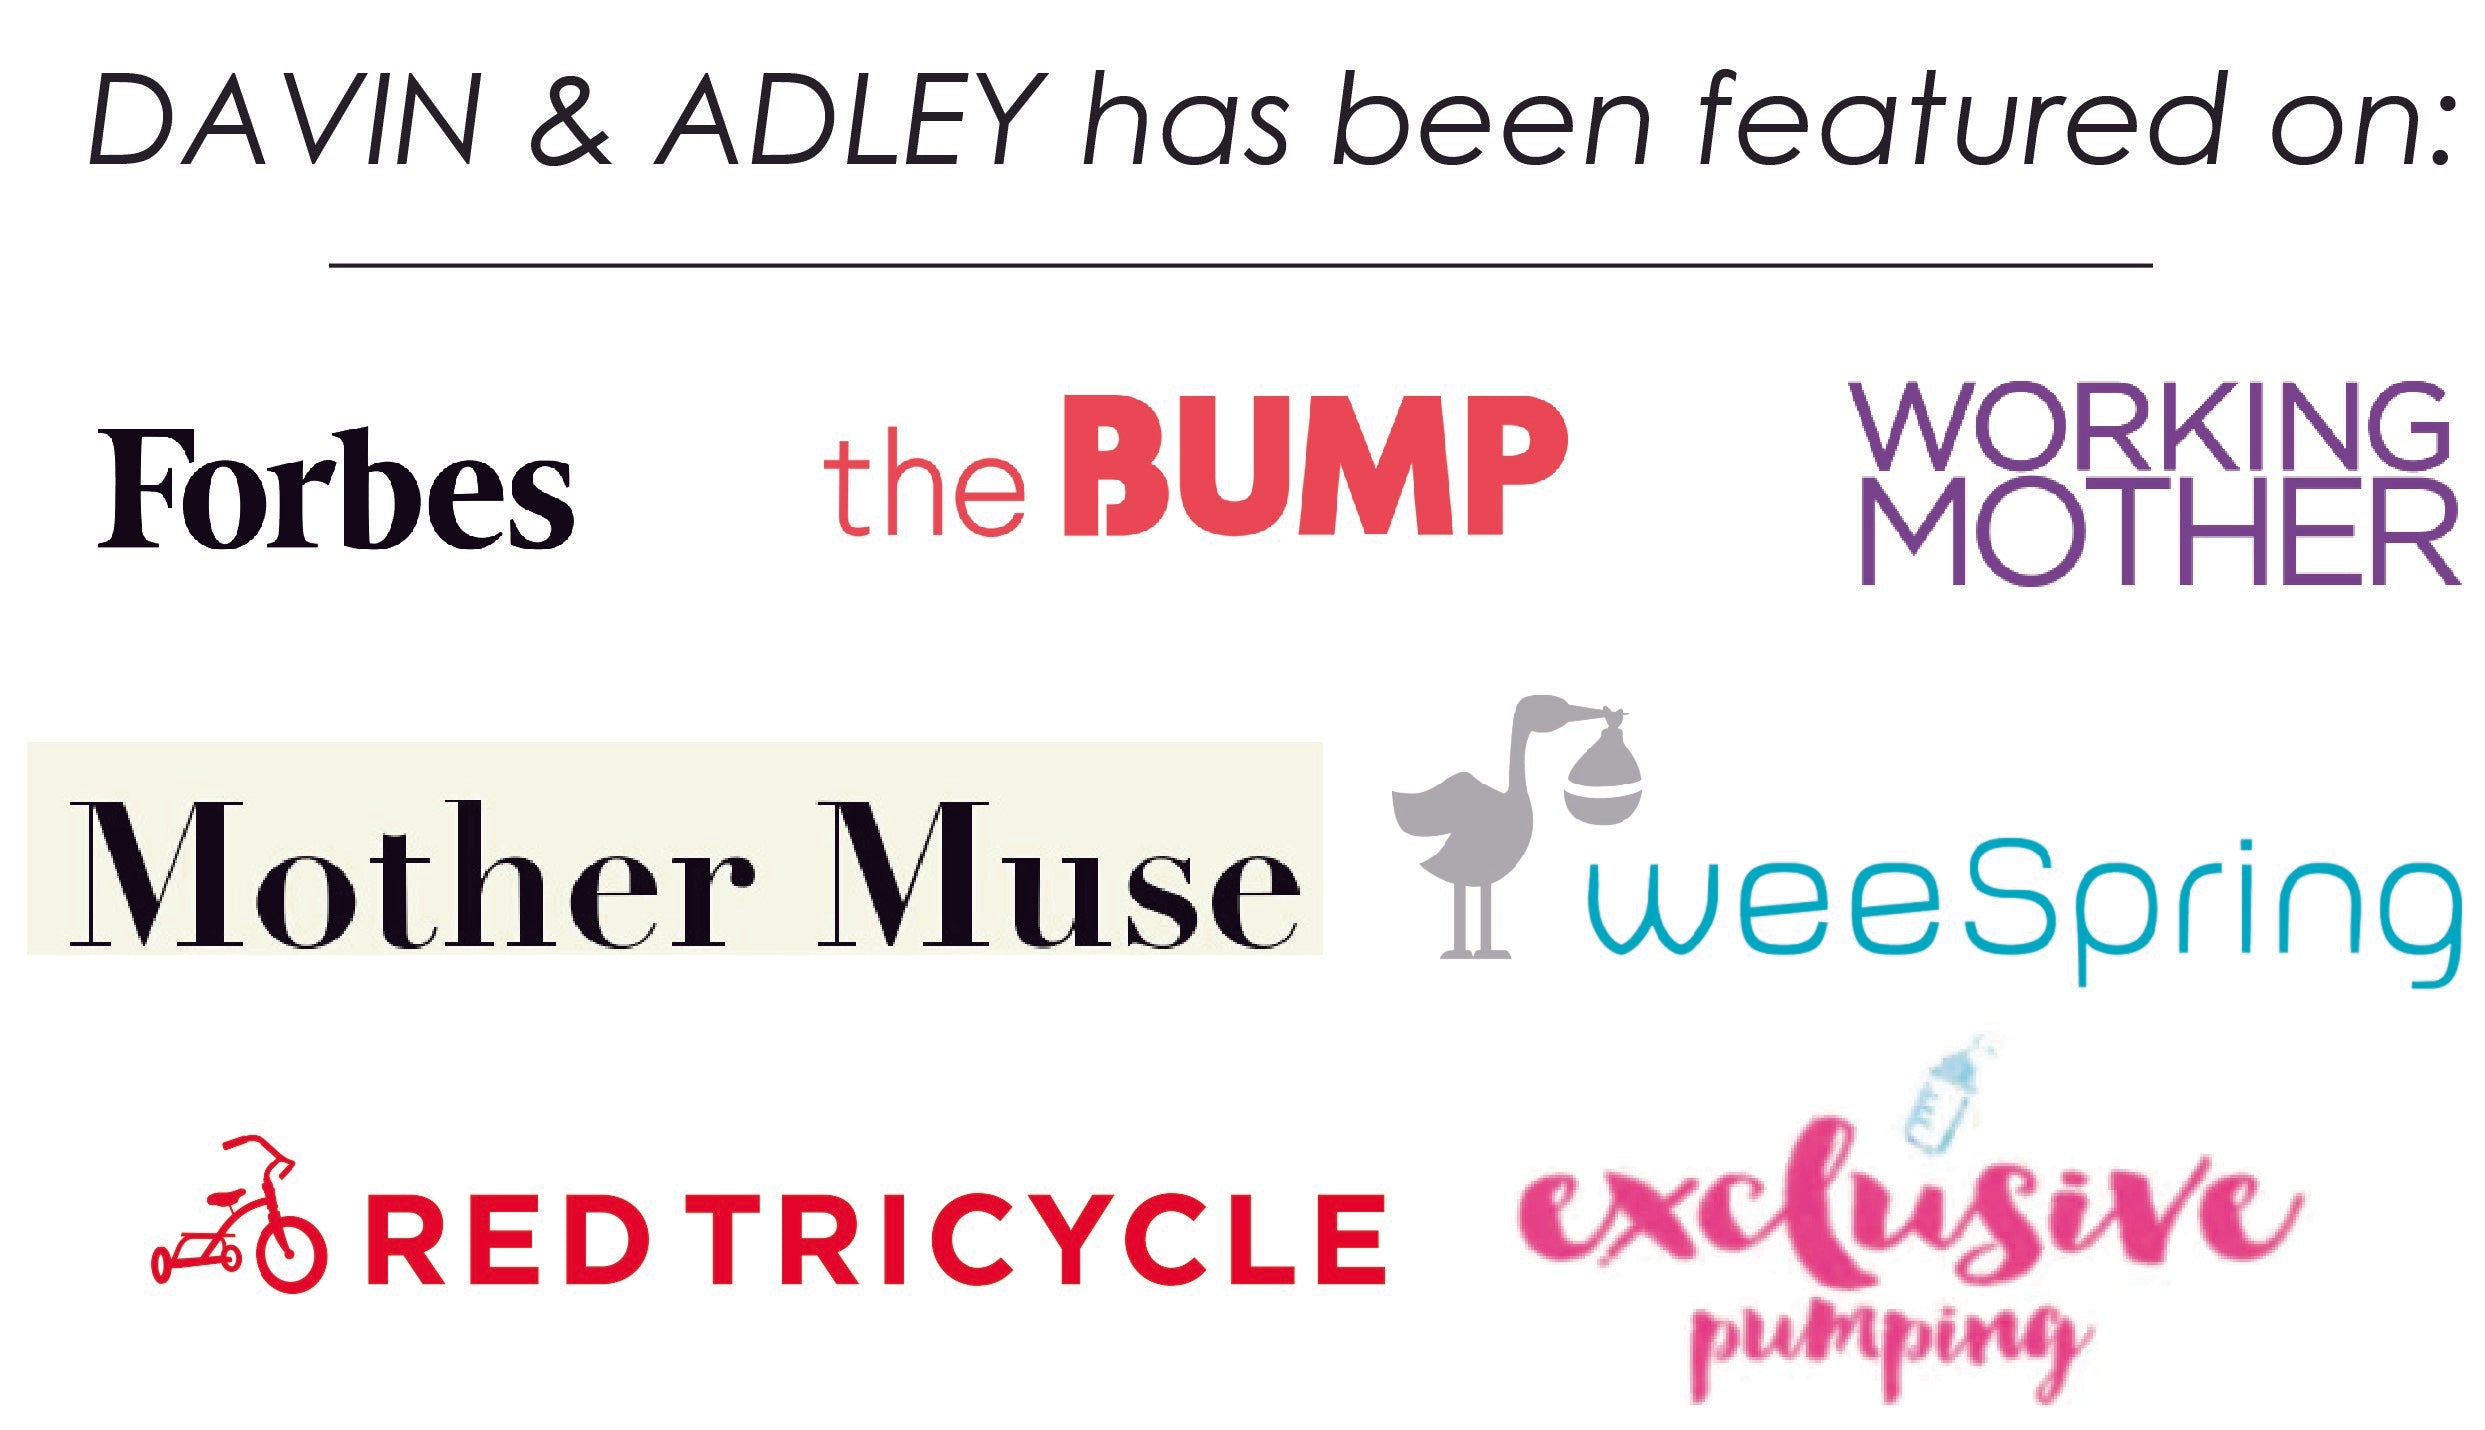 as seen in the bump, forbes, wee spring, mother muse, working mother, red tricycle exclusive pumping